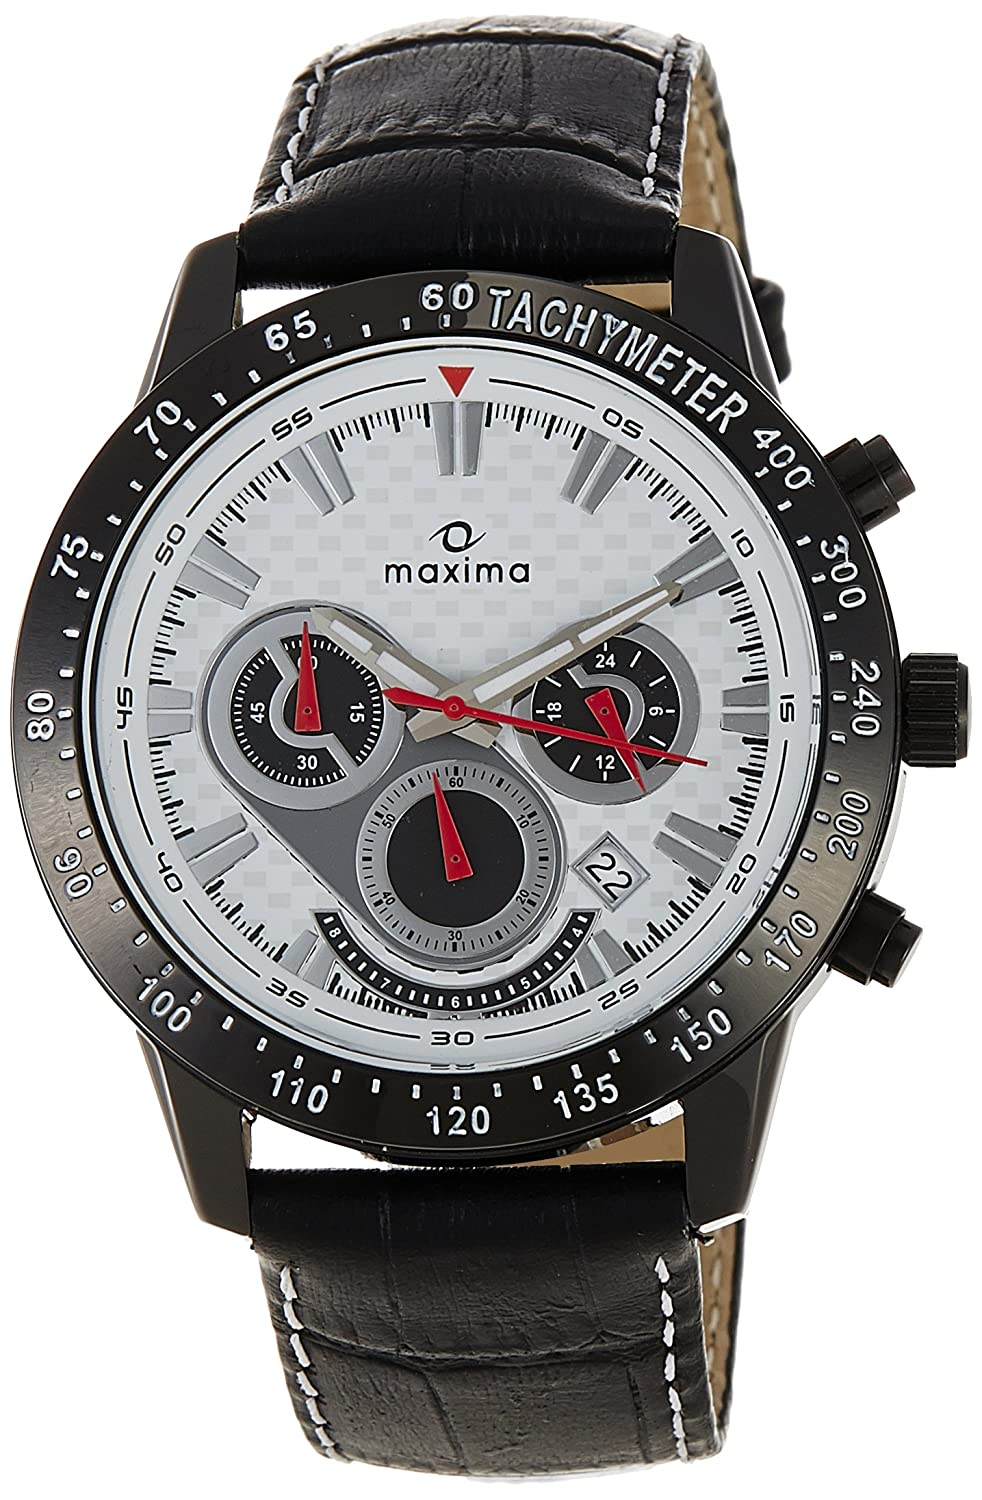 Maxima Attivo Chronograph White Dial Best Mens Watches Under 5000 in India to buy in 2019 - Reviews & Buyers Guide